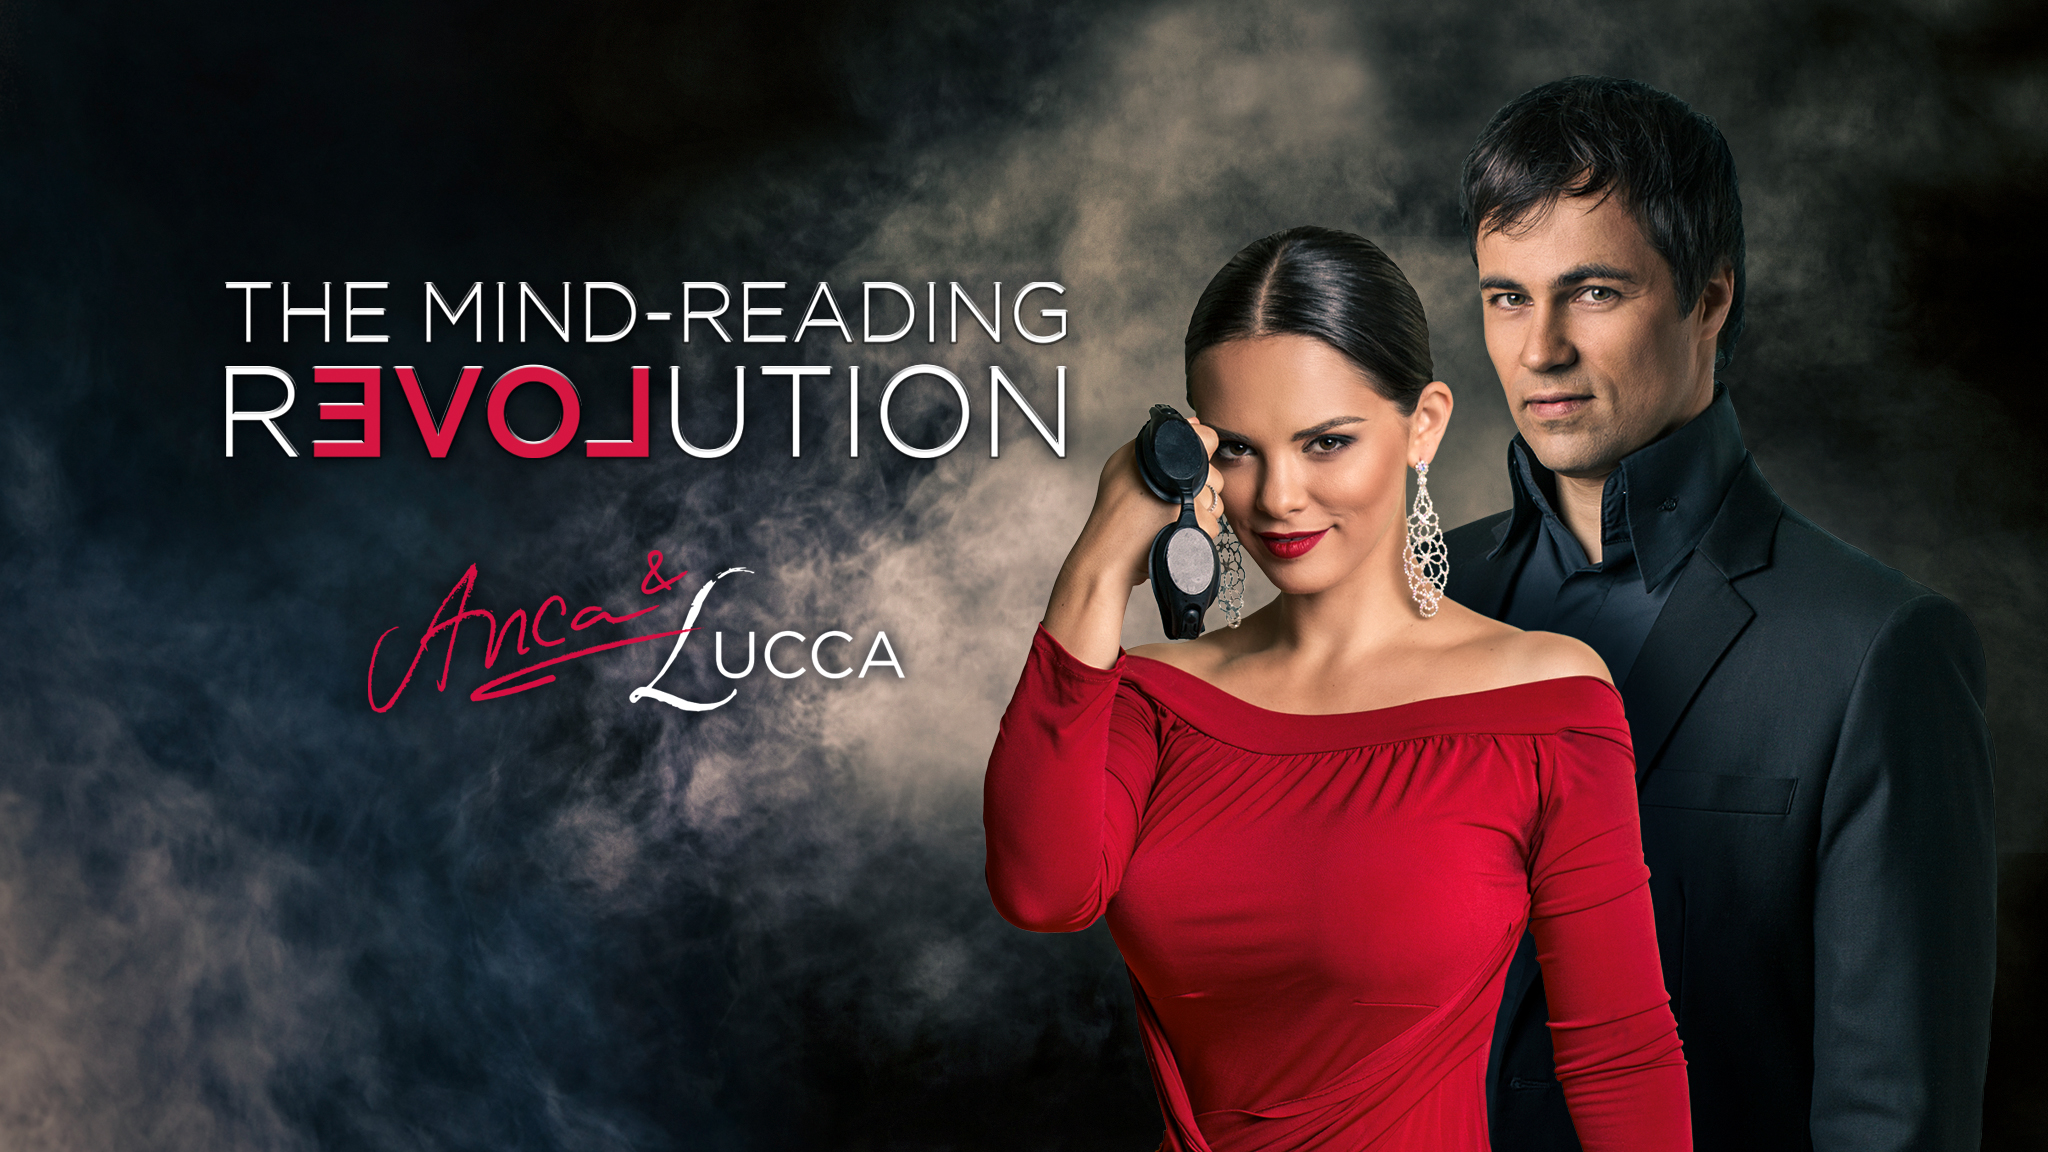 The Mind-Reading Revolution 2018 title